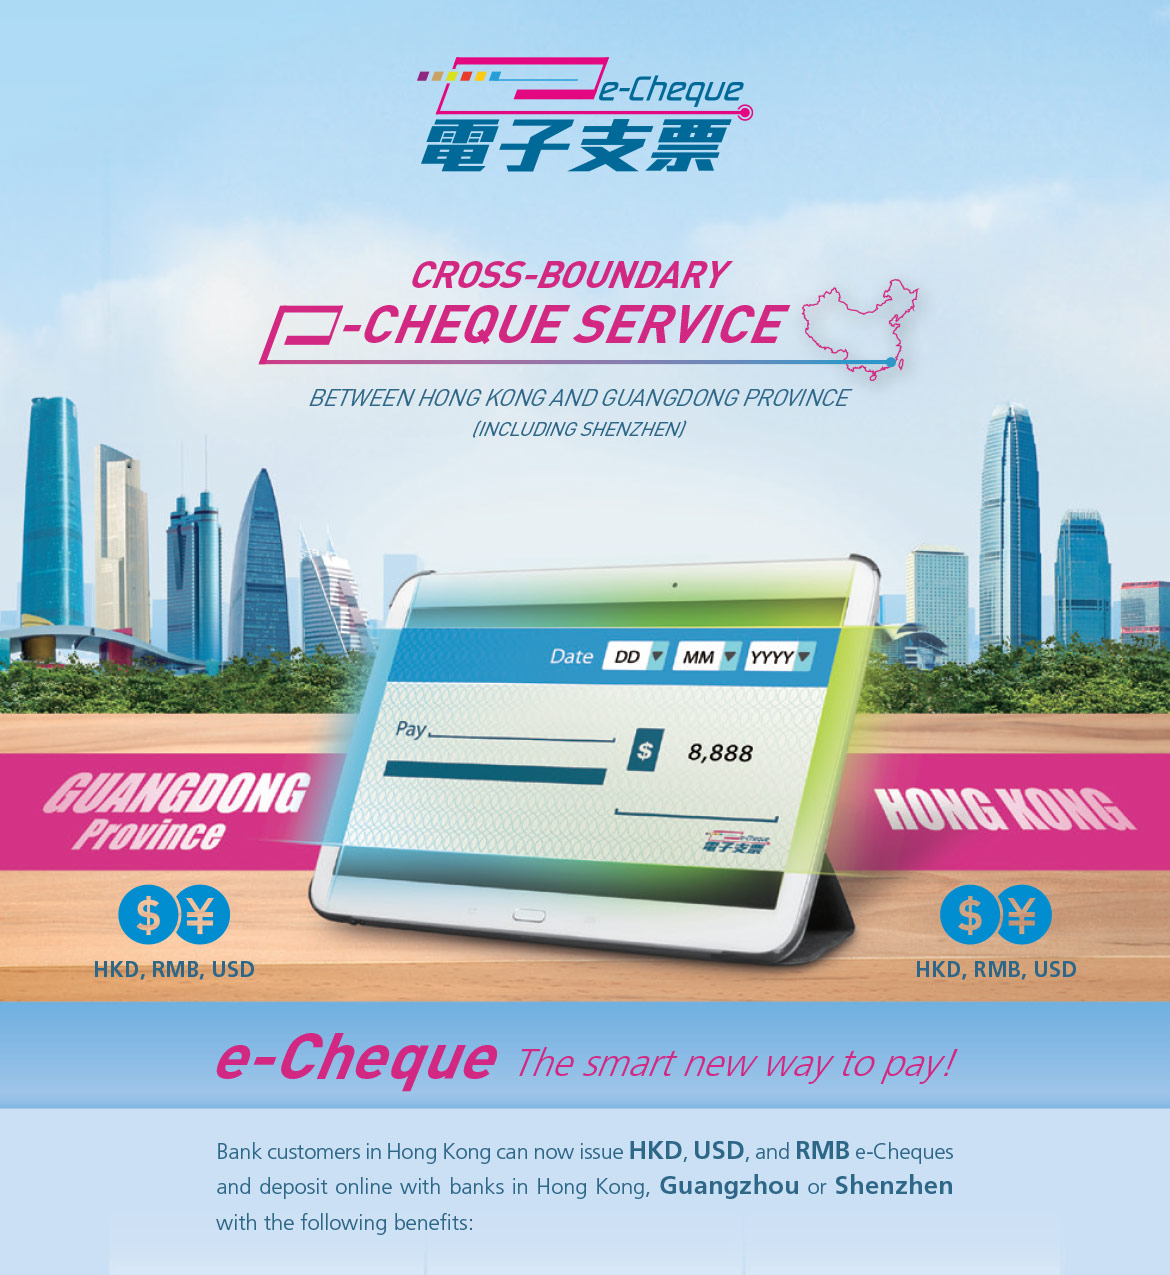 e-Brochure - Cross-boundary e-Cheque Service between Hong Kong and Guangdong Province (including Shenzhen)